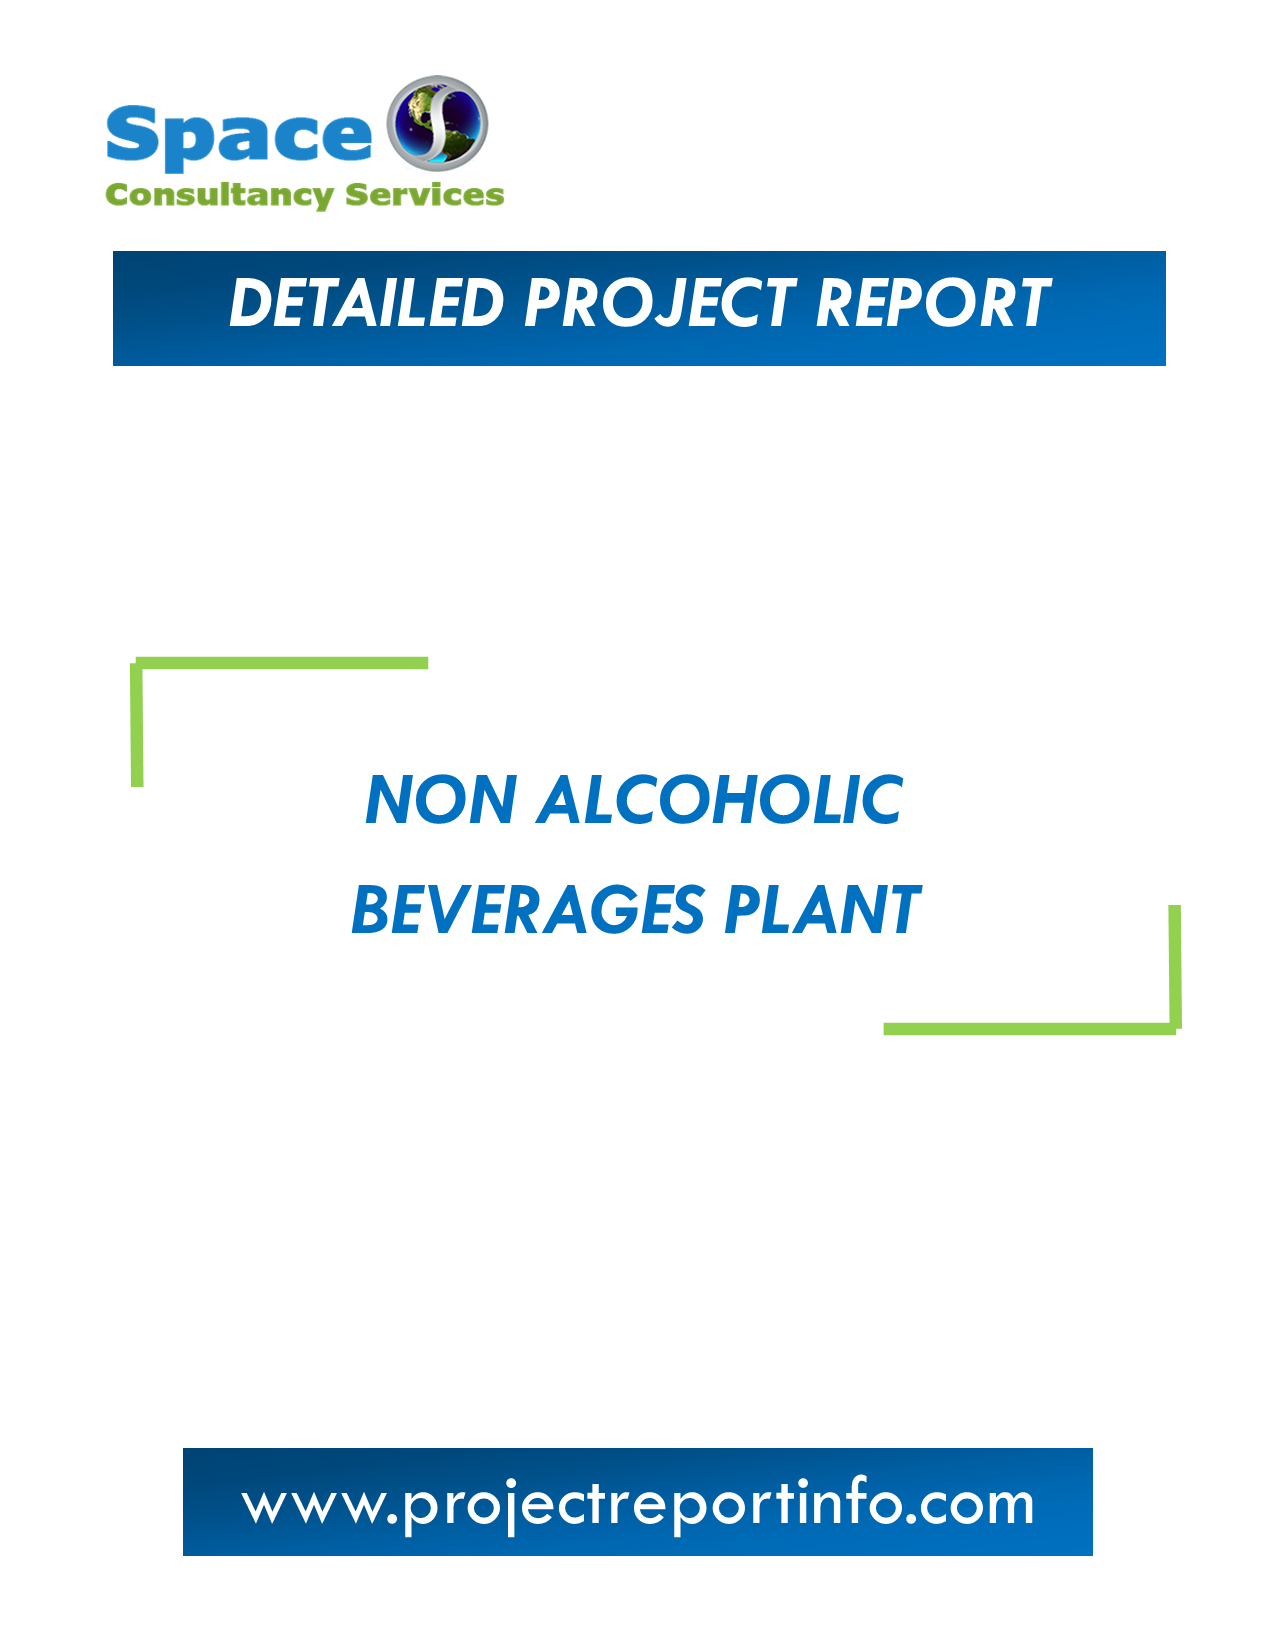 Project Report on Non Alcoholic Beverages Plant